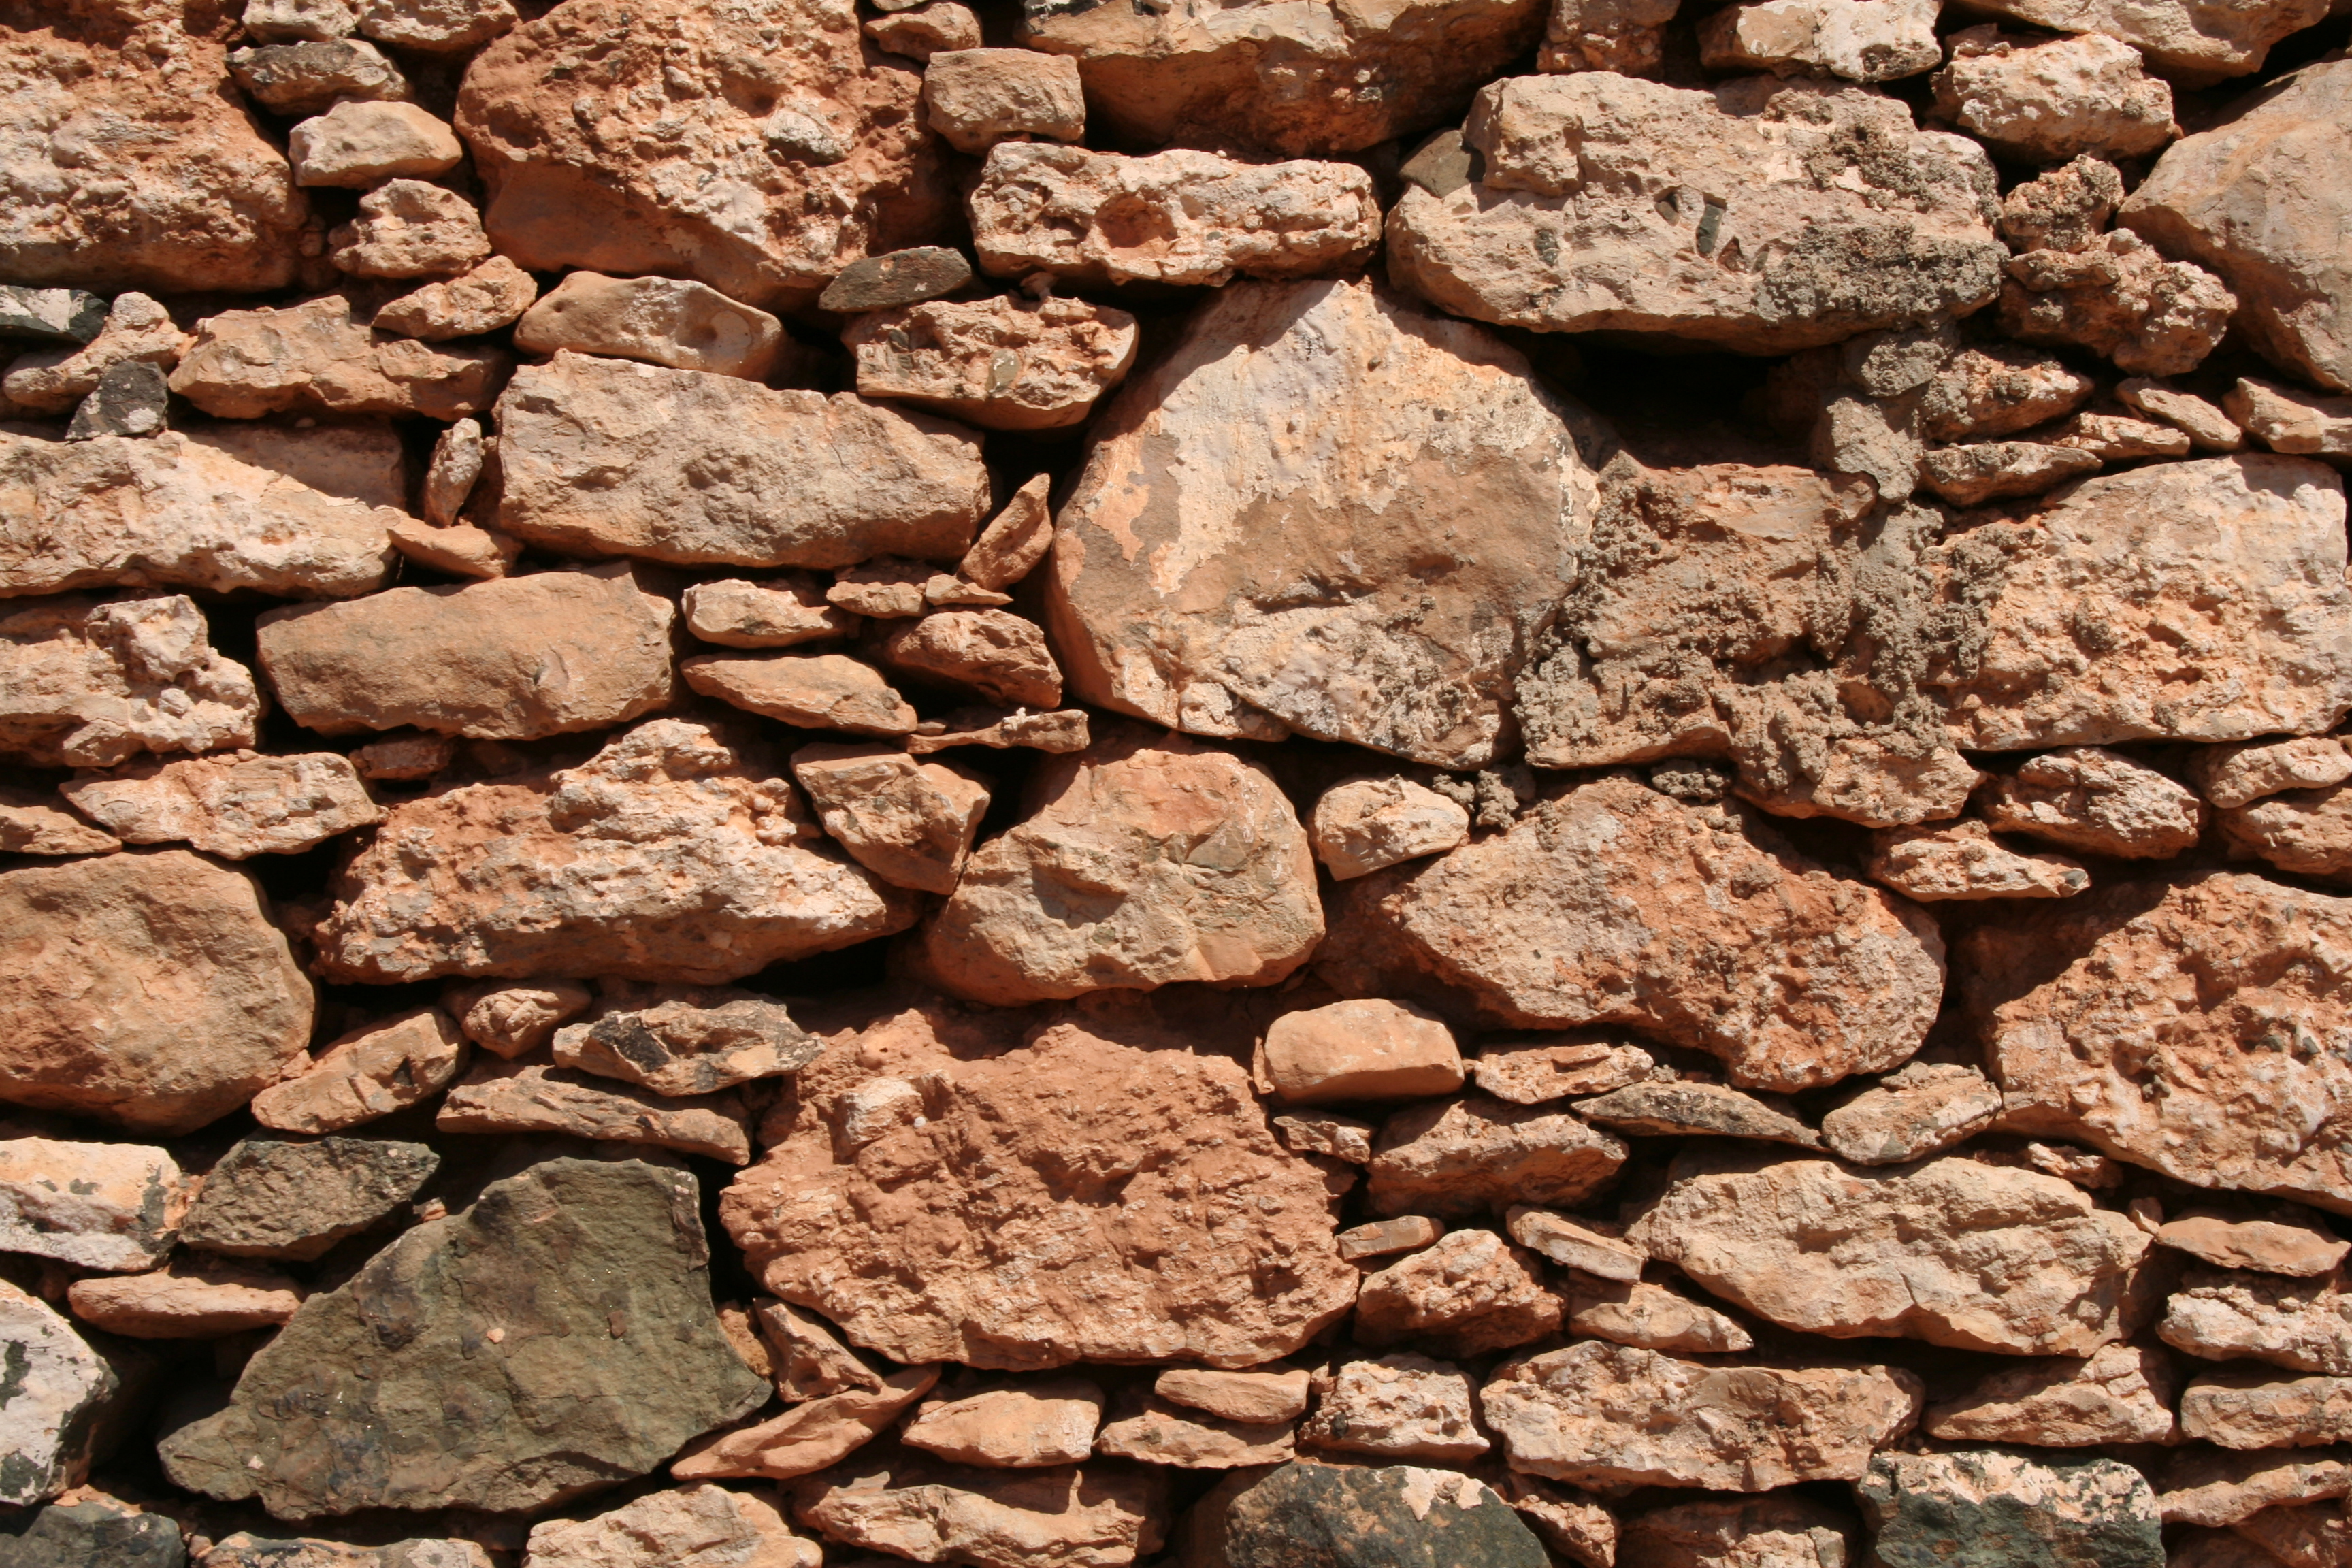 High Res Stone : Hi res textures of wood and volcanic stone from